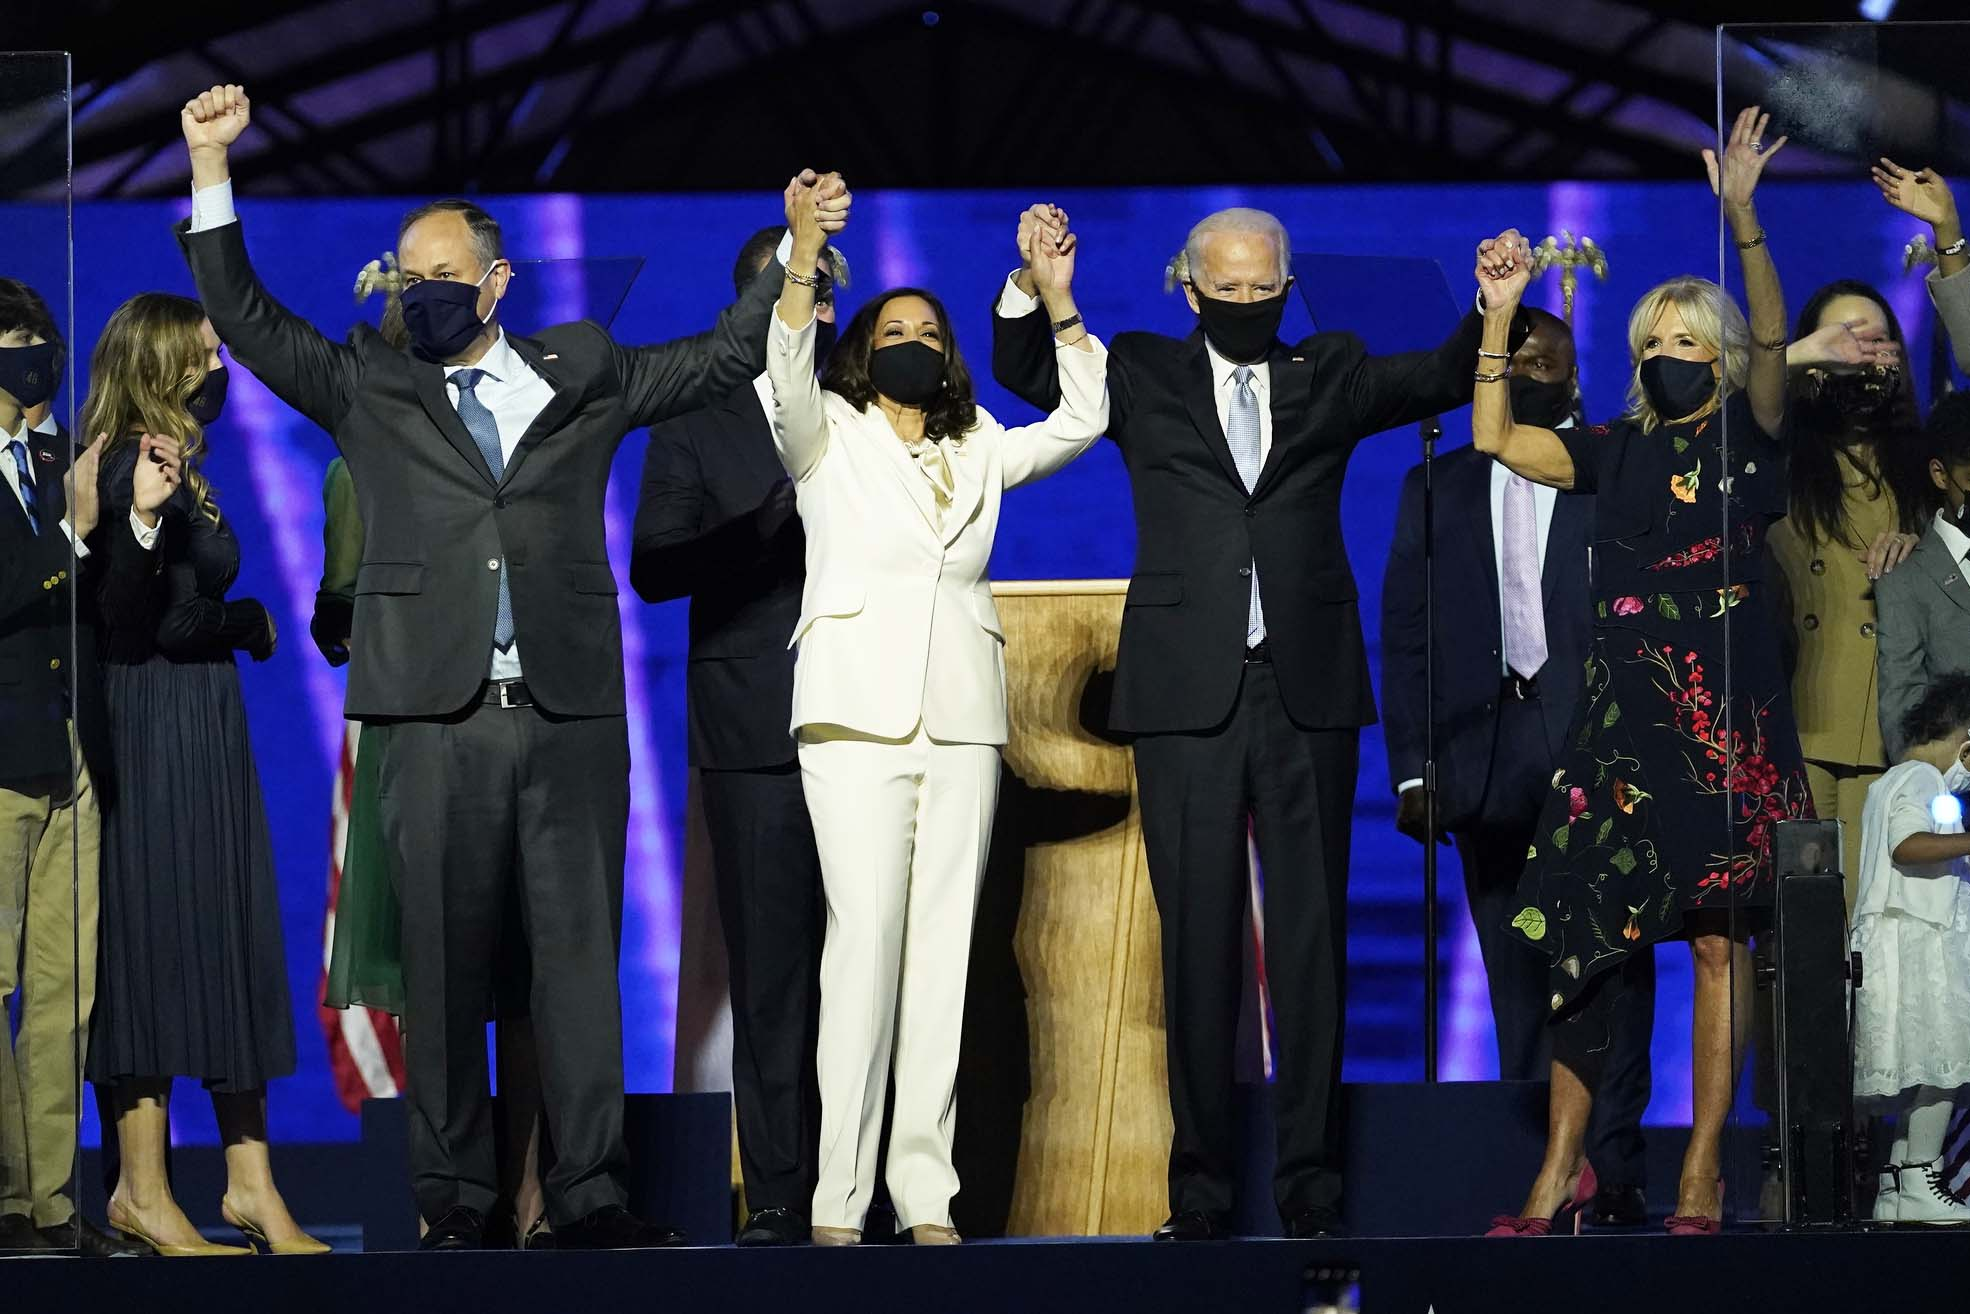 From left, Doug Emhoff, husband of Vice President-elect Kamala Harris, Harris, President-elect Joe Biden and his wife Jill Biden on stage together, Saturday, Nov. 7, 2020, in Wilmington, Del.